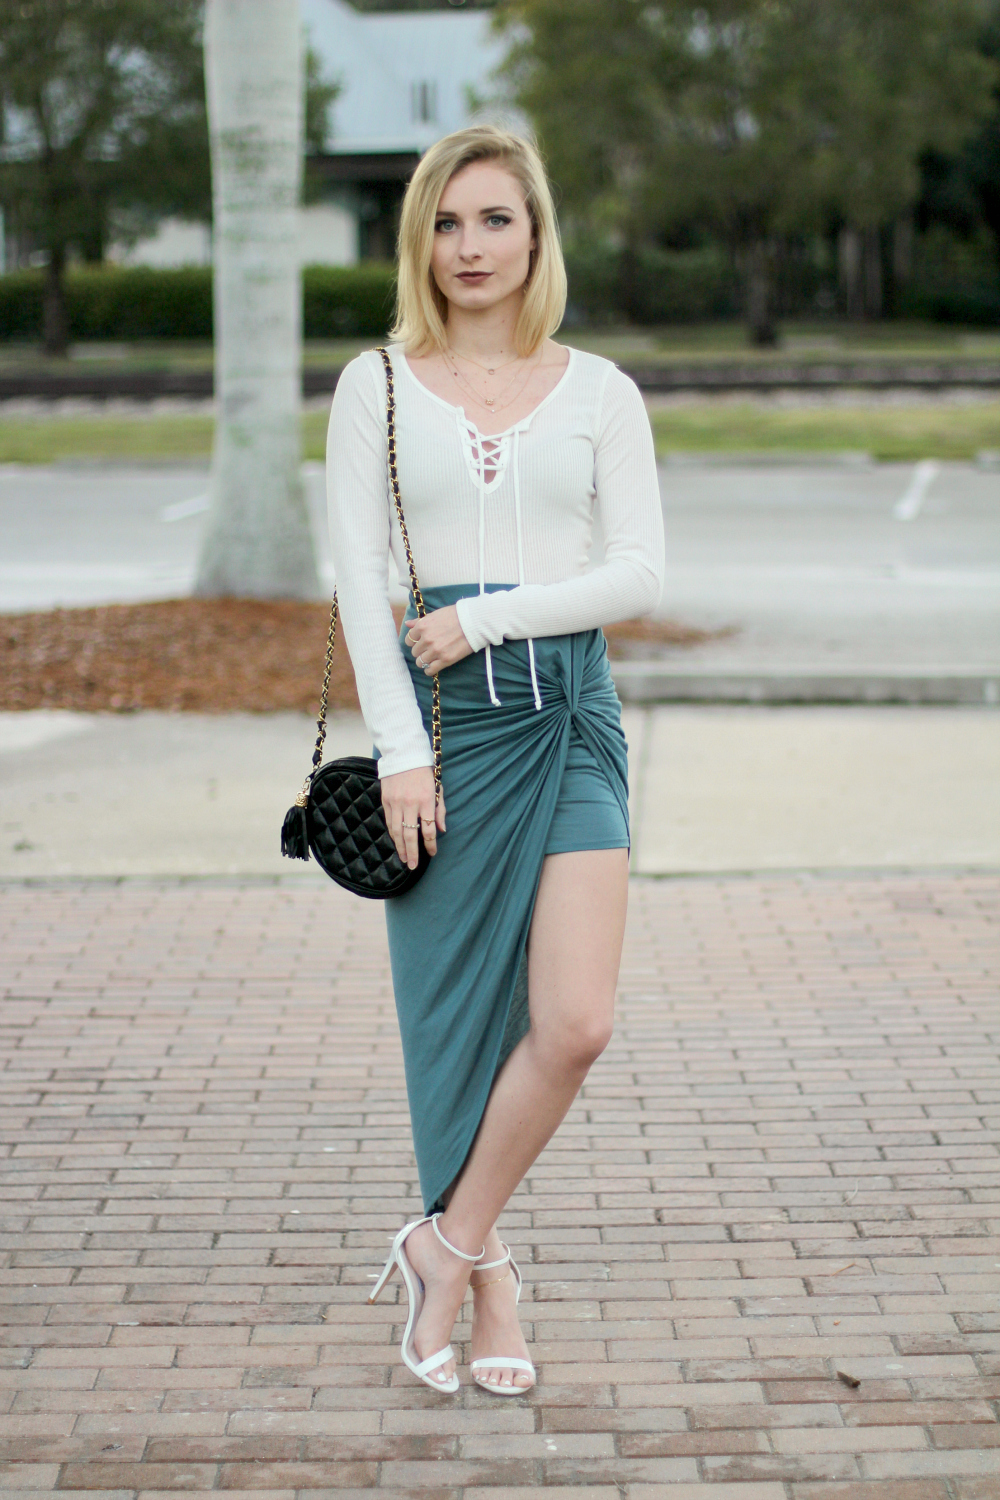 Twisted teal skirt